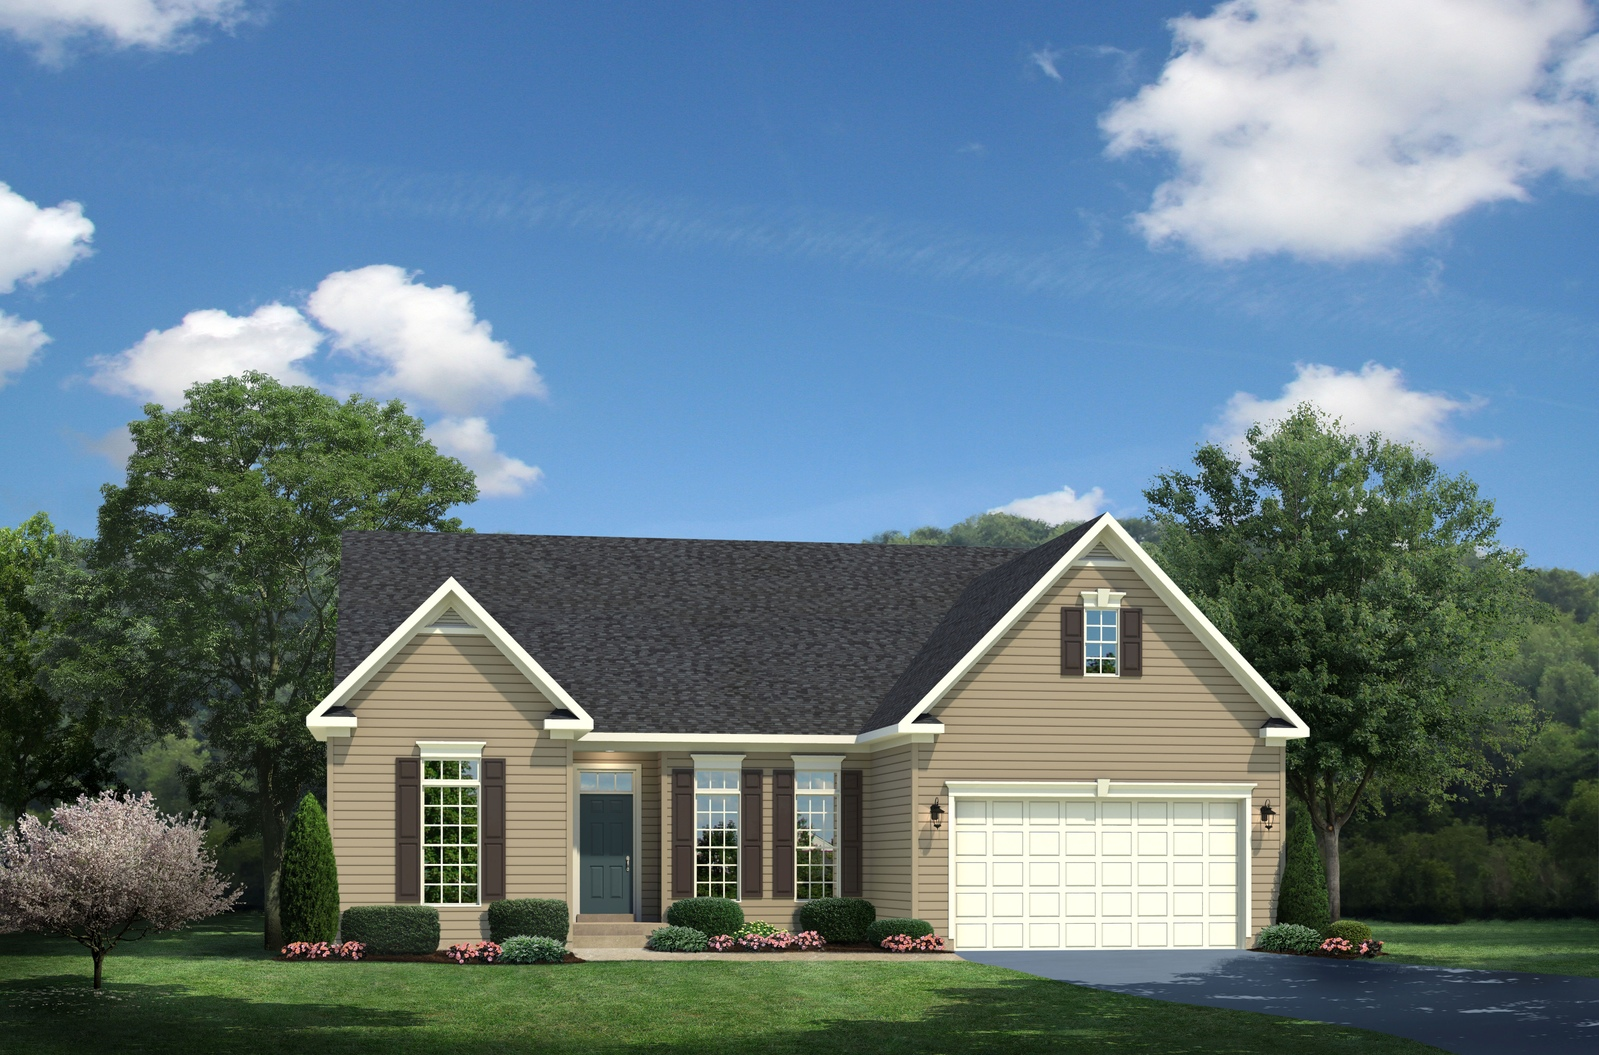 New Homes For Sale In Chantilly Va